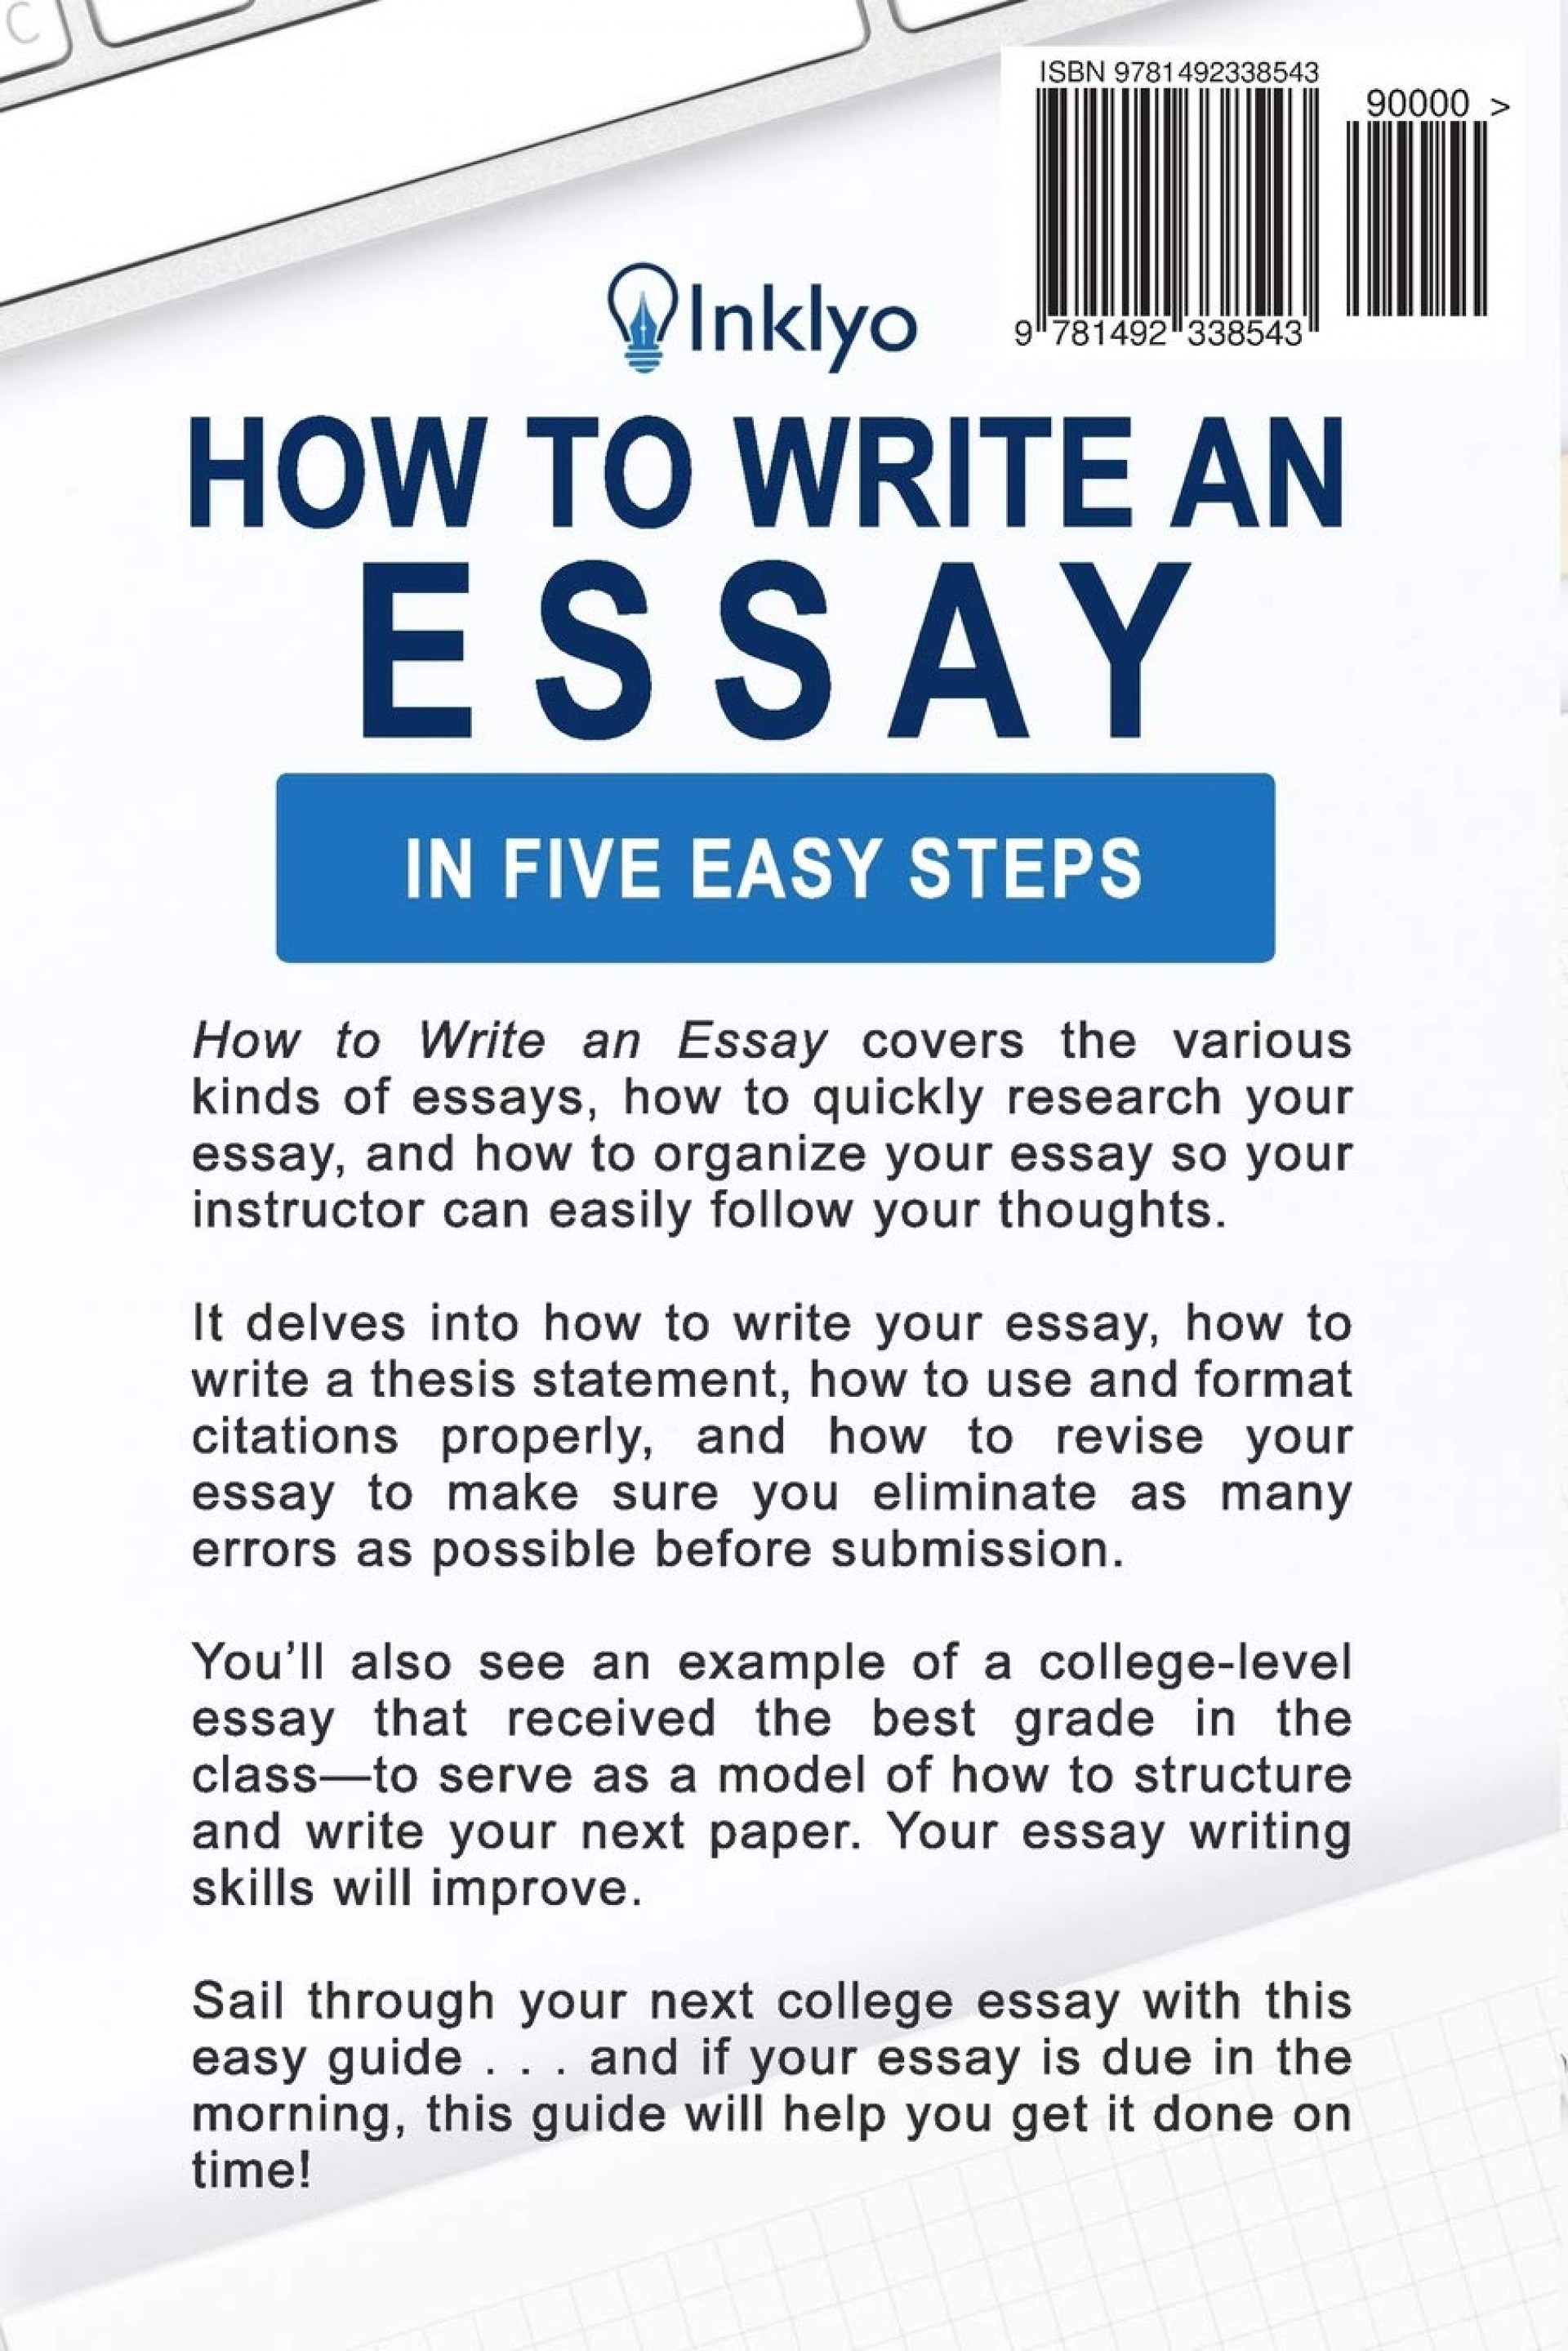 008 Essay Example How Write An Unbelievable To Ppt Tips On For A Scholarship Introduction With Thesis Statement 1920